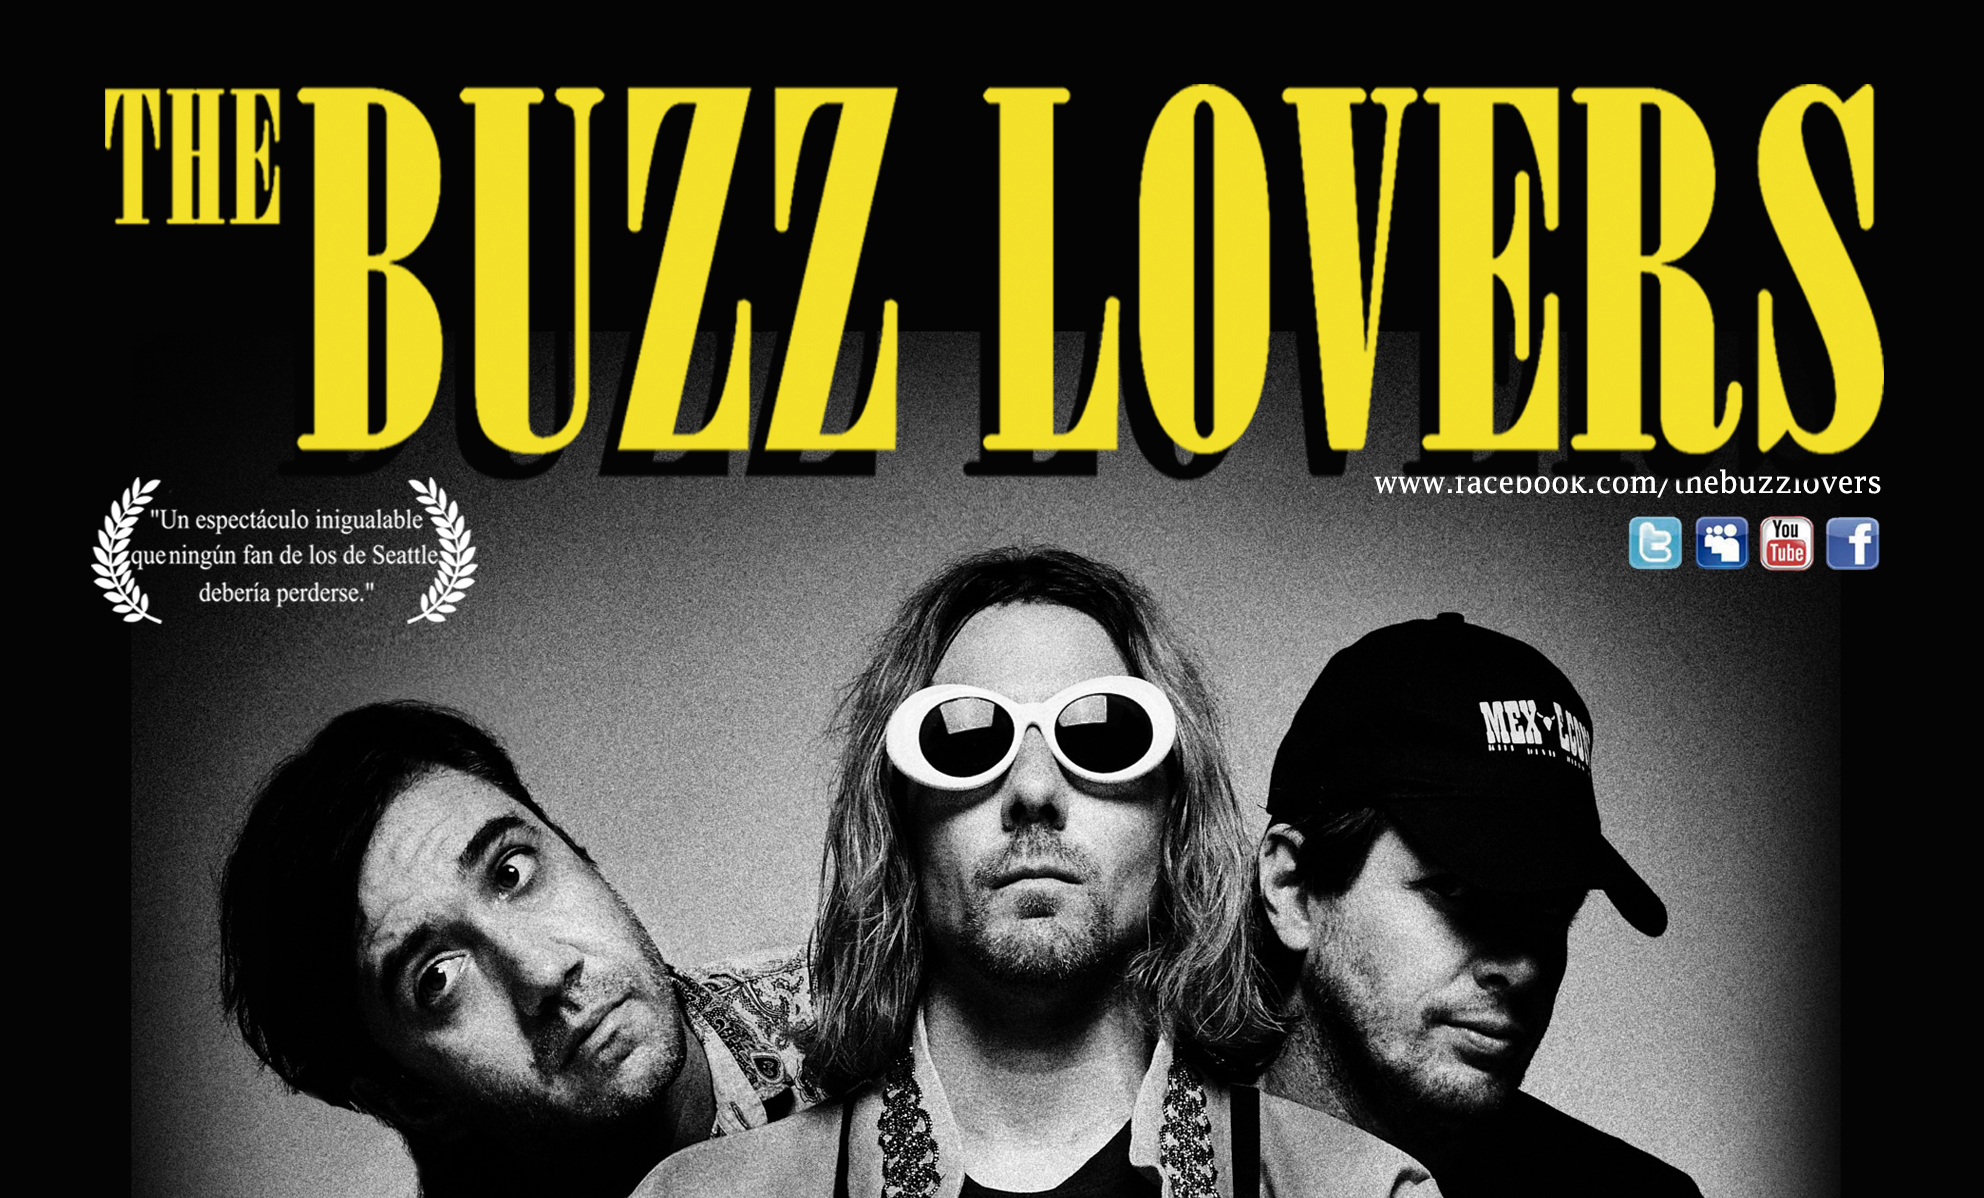 The buzzlovers BANNER